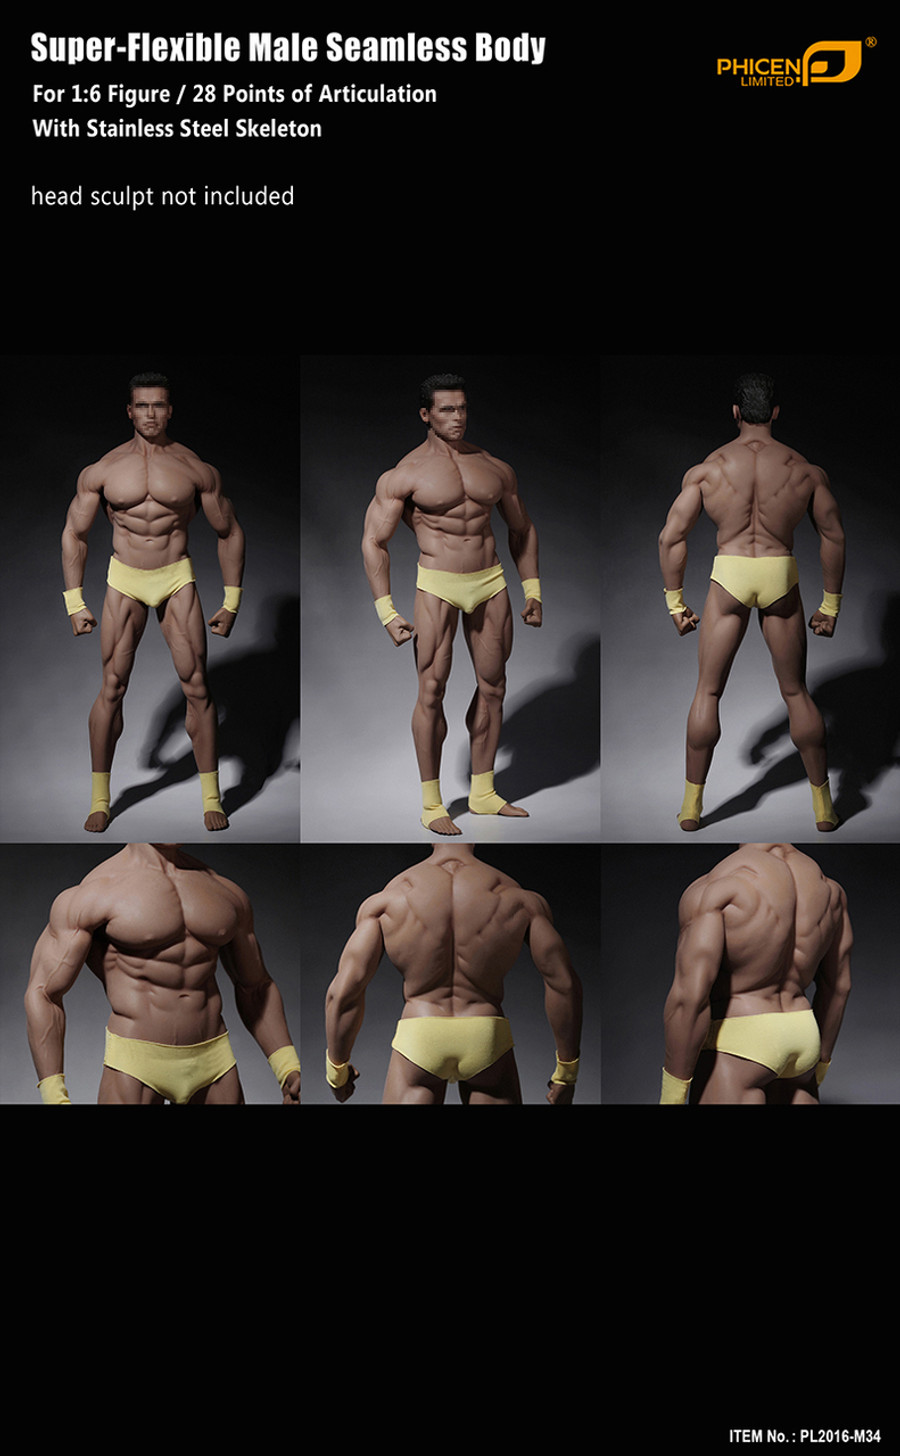 Phicen - Super Flexible Male Seamless Body